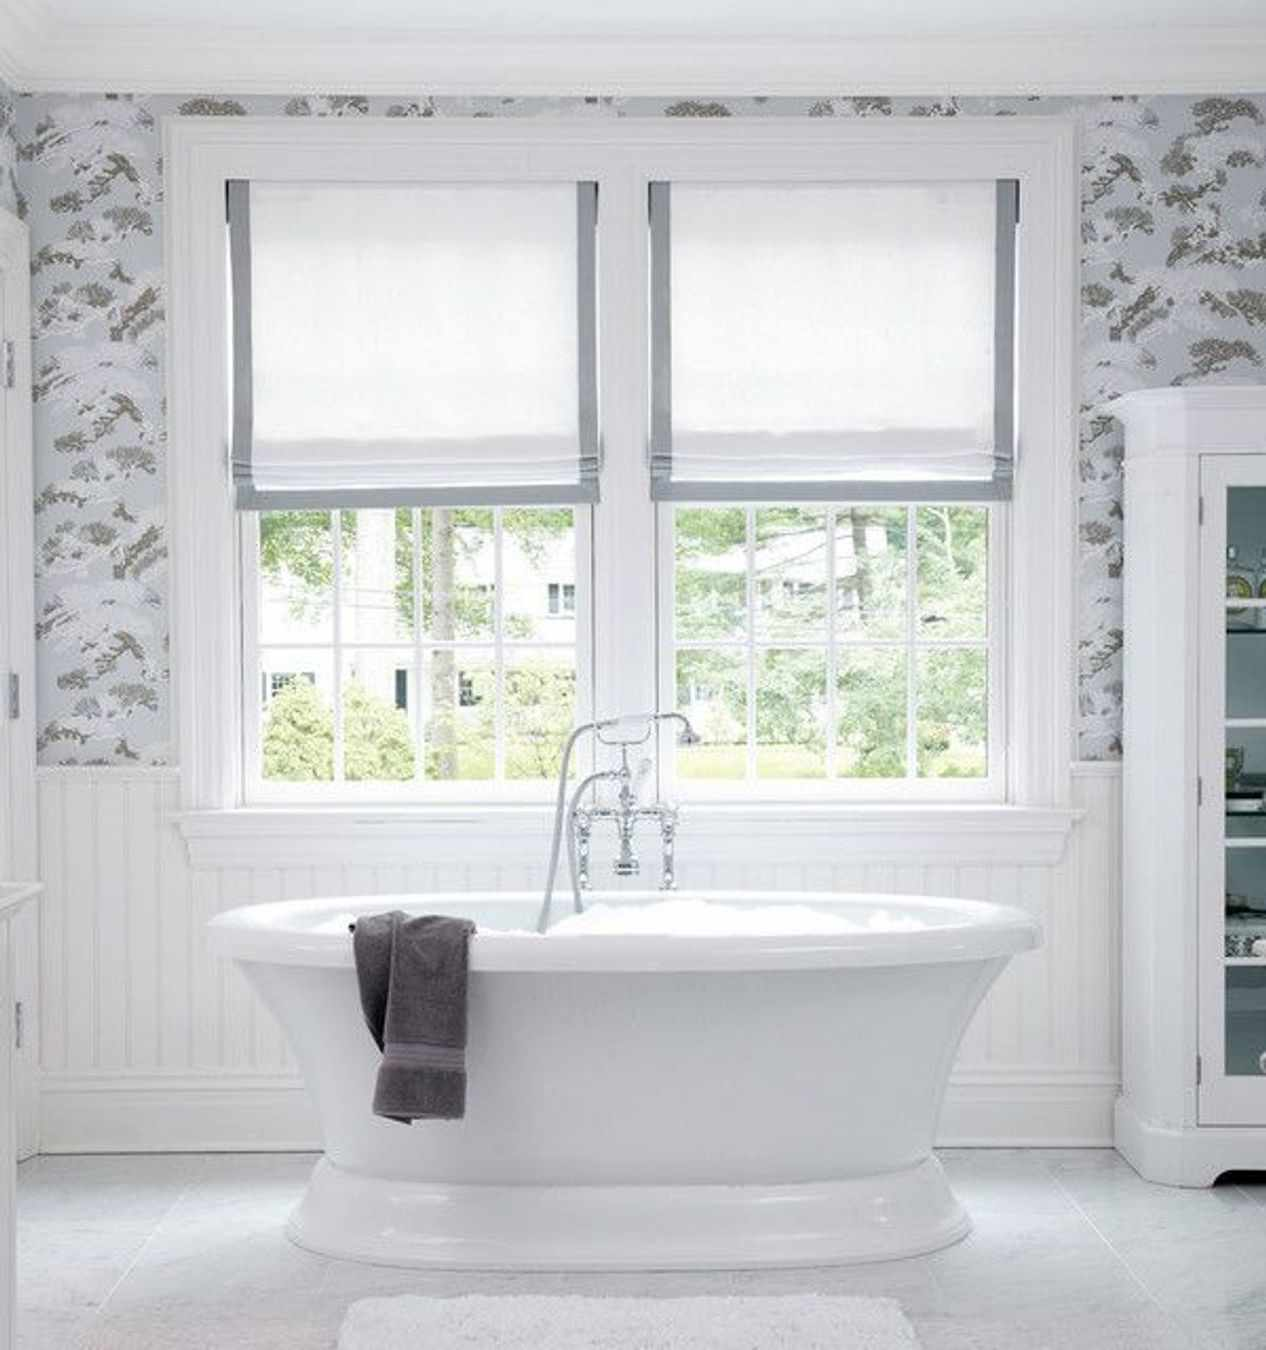 9 bathroom window treatment ideas deco window fashions for Bathroom window treatments privacy